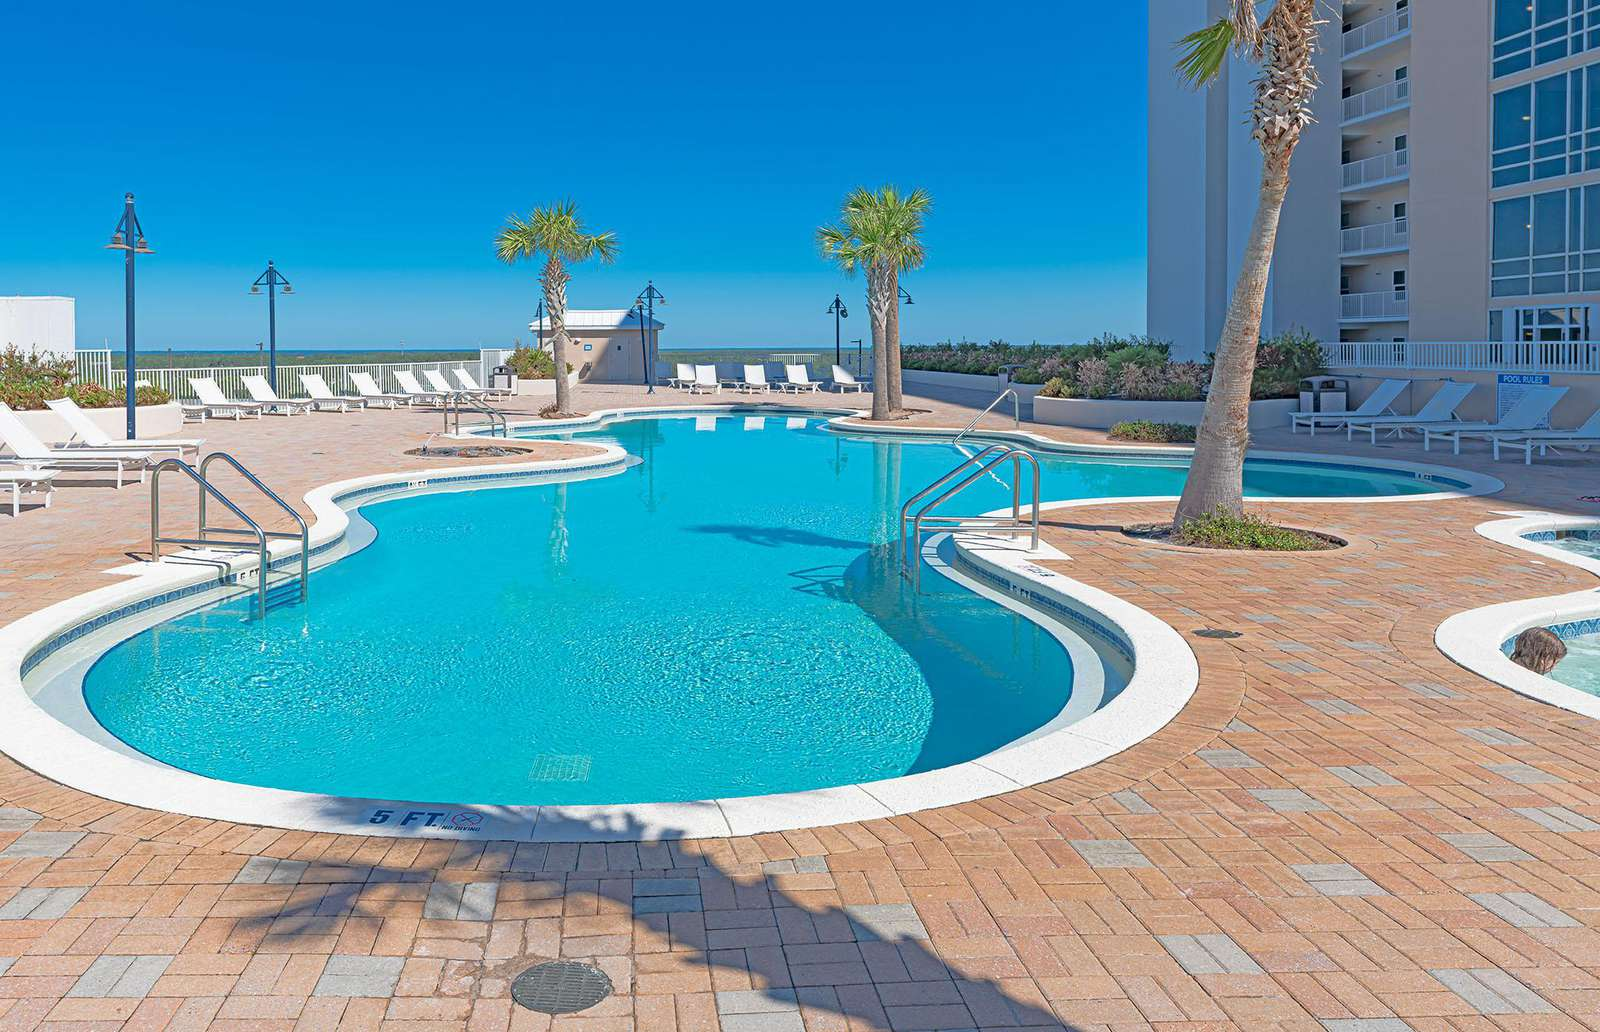 The amenities are bountiful at Laketown Wharf!